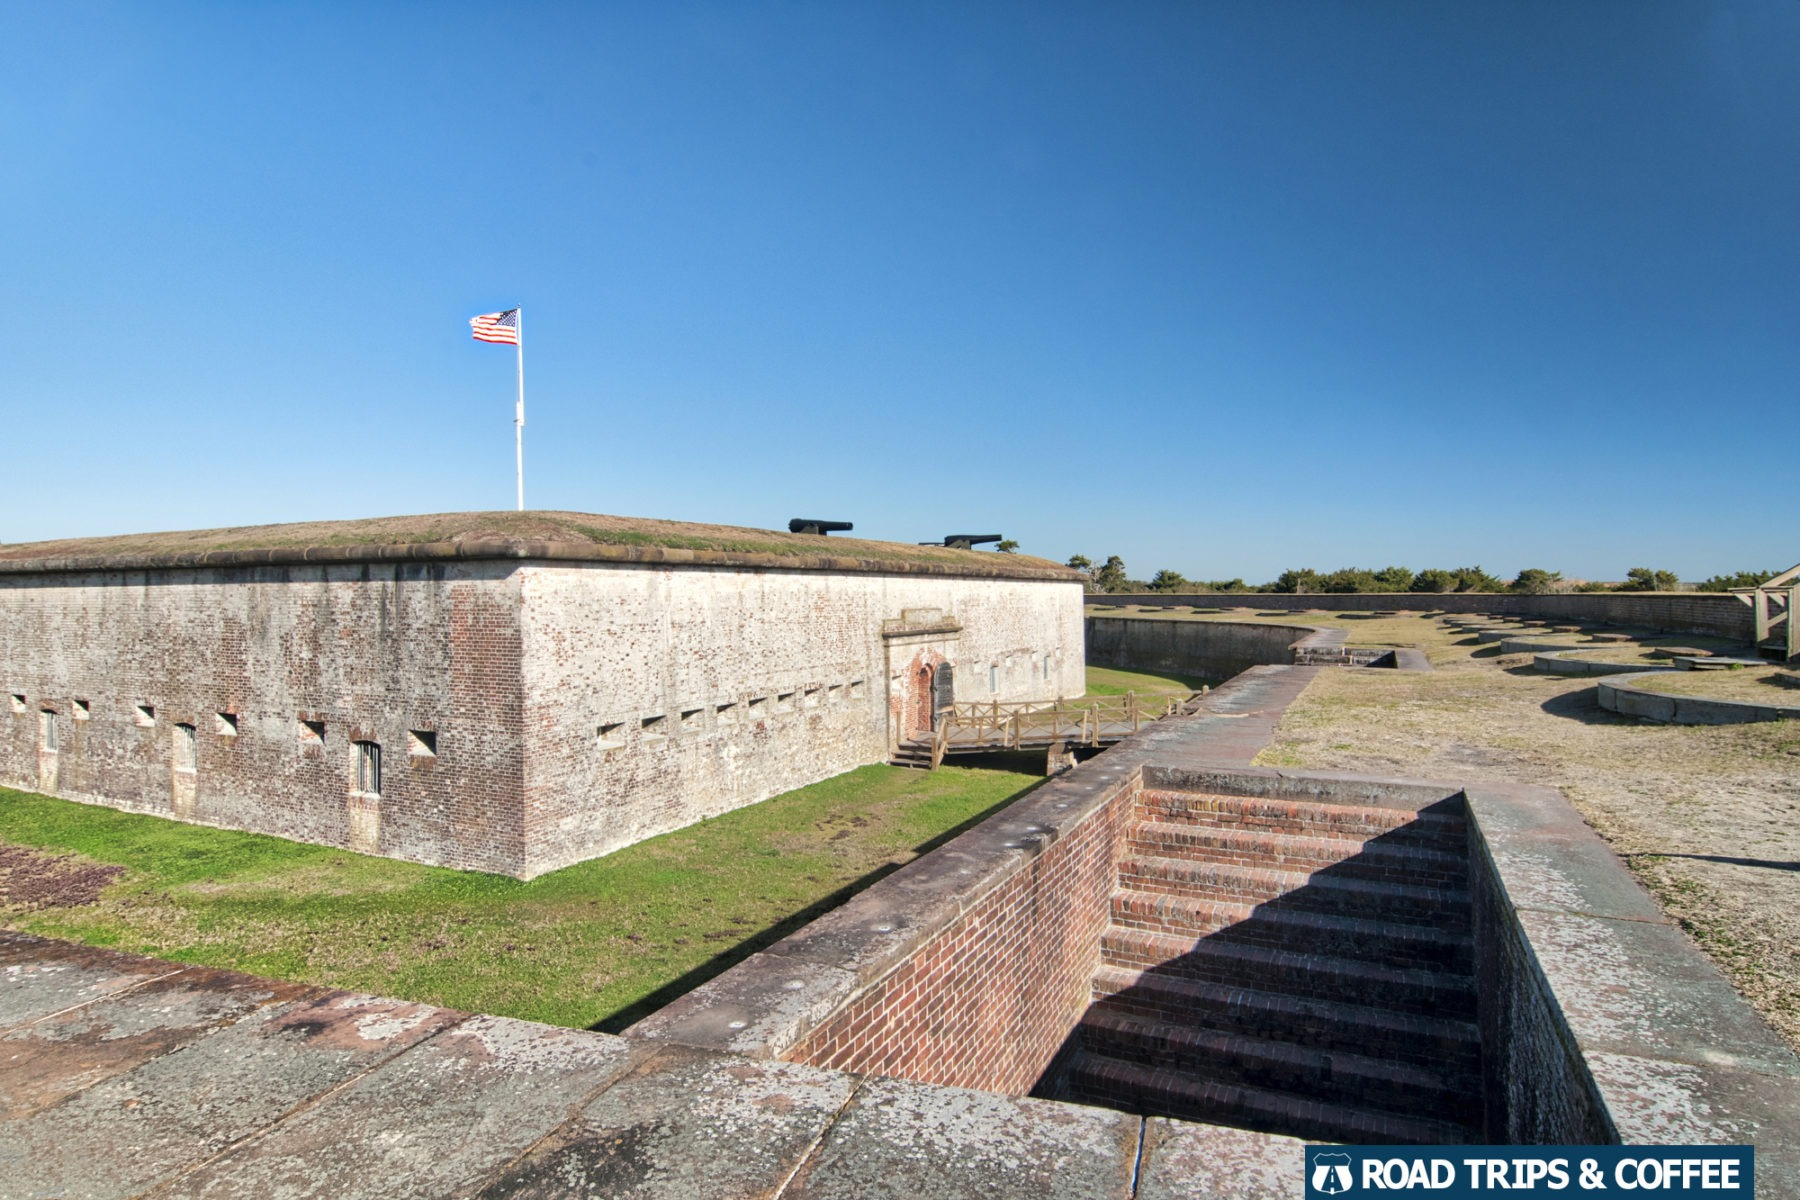 A brick staircase leads down into an underground room along the outer wall at Fort Macon State Park in Atlantic Beach, North Carolina